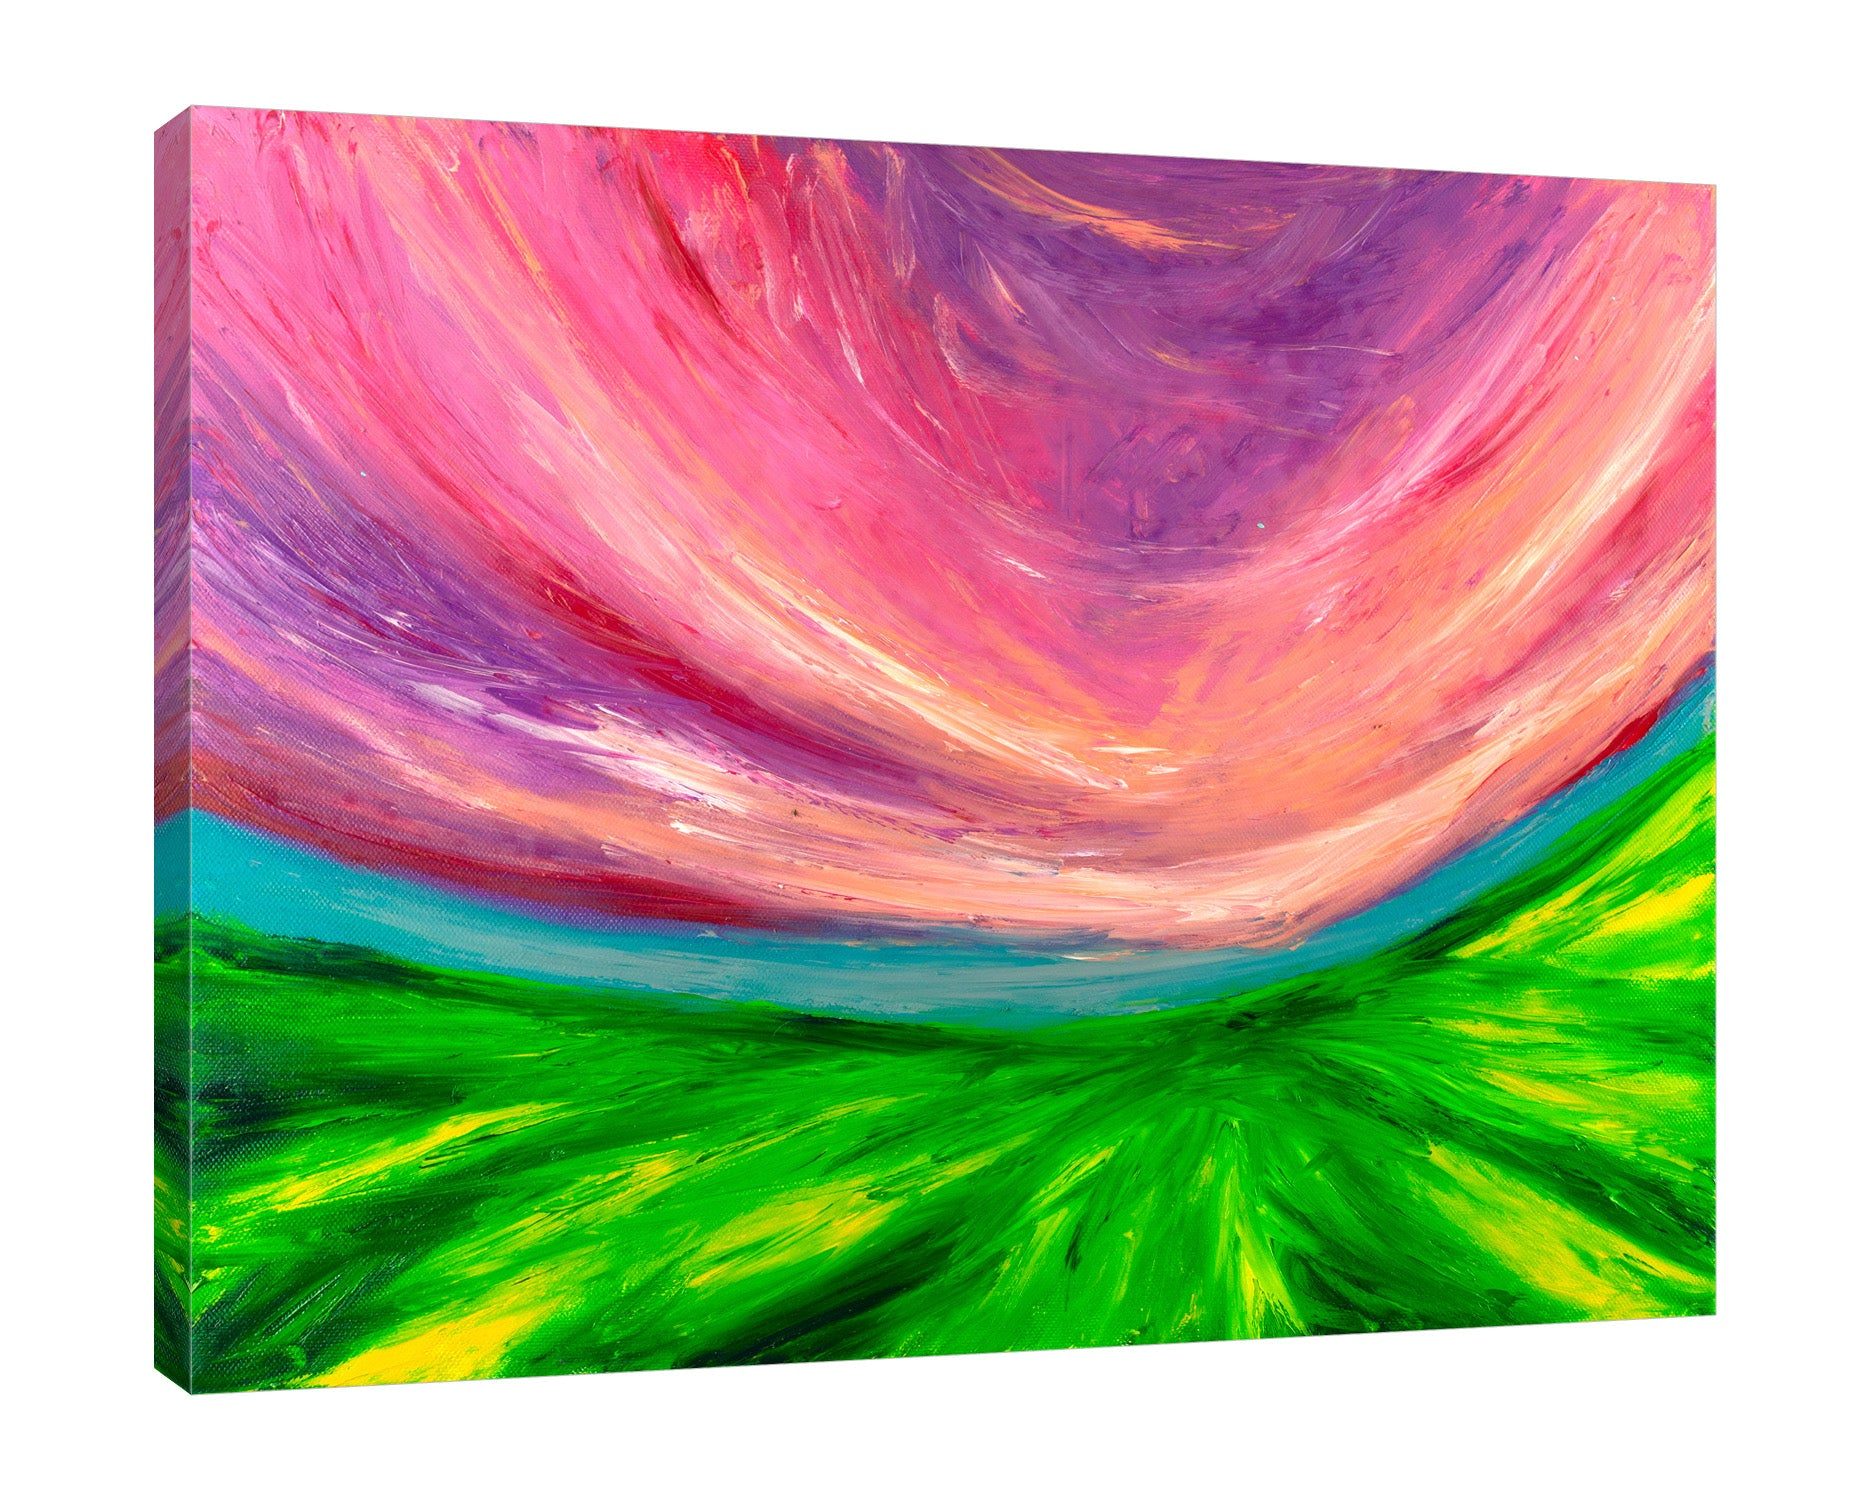 Chiara-Magni,Modern & Contemporary,Abstract,Landscape & Nature,Finger-paint,pink,green,skies,blue,fields,violet,lines,abstract,